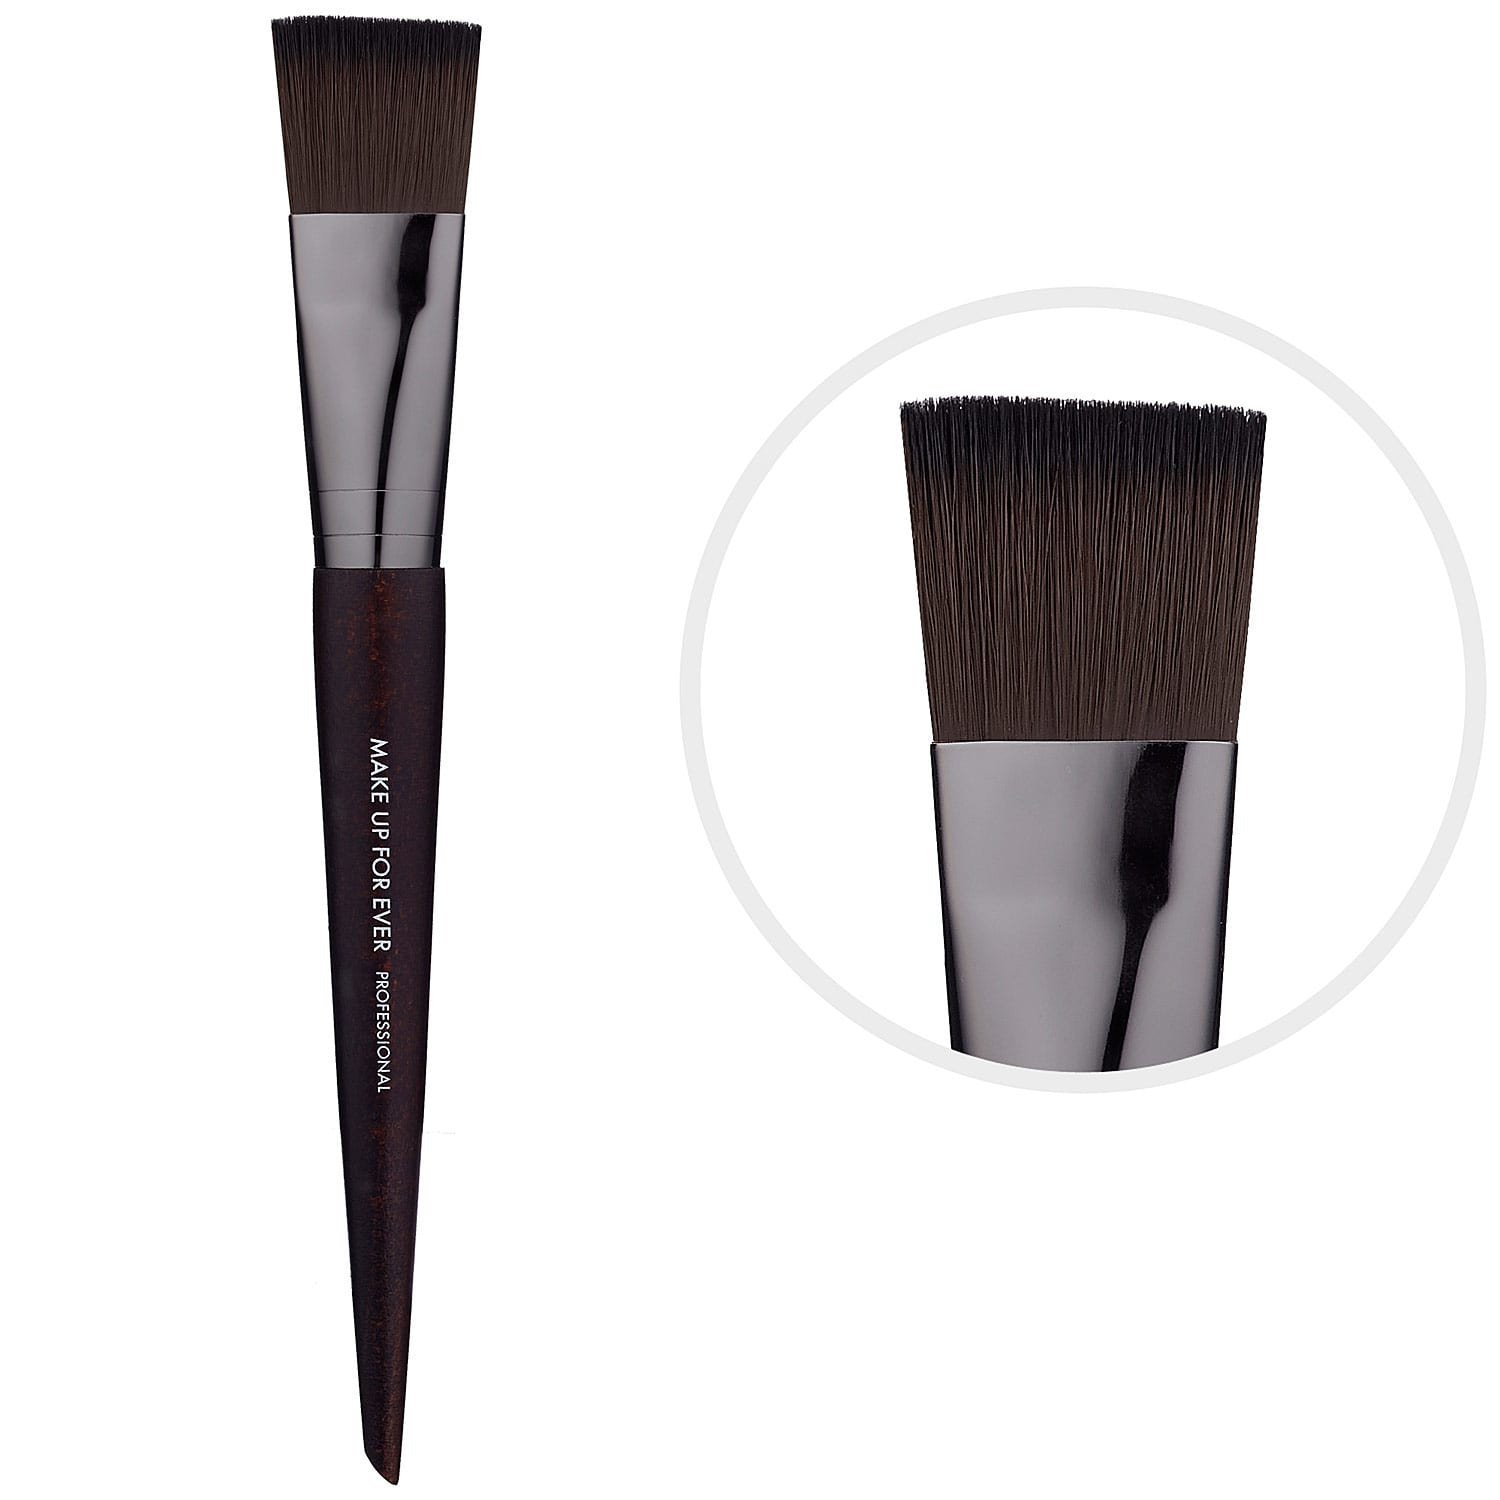 406 Body Foundation Brush